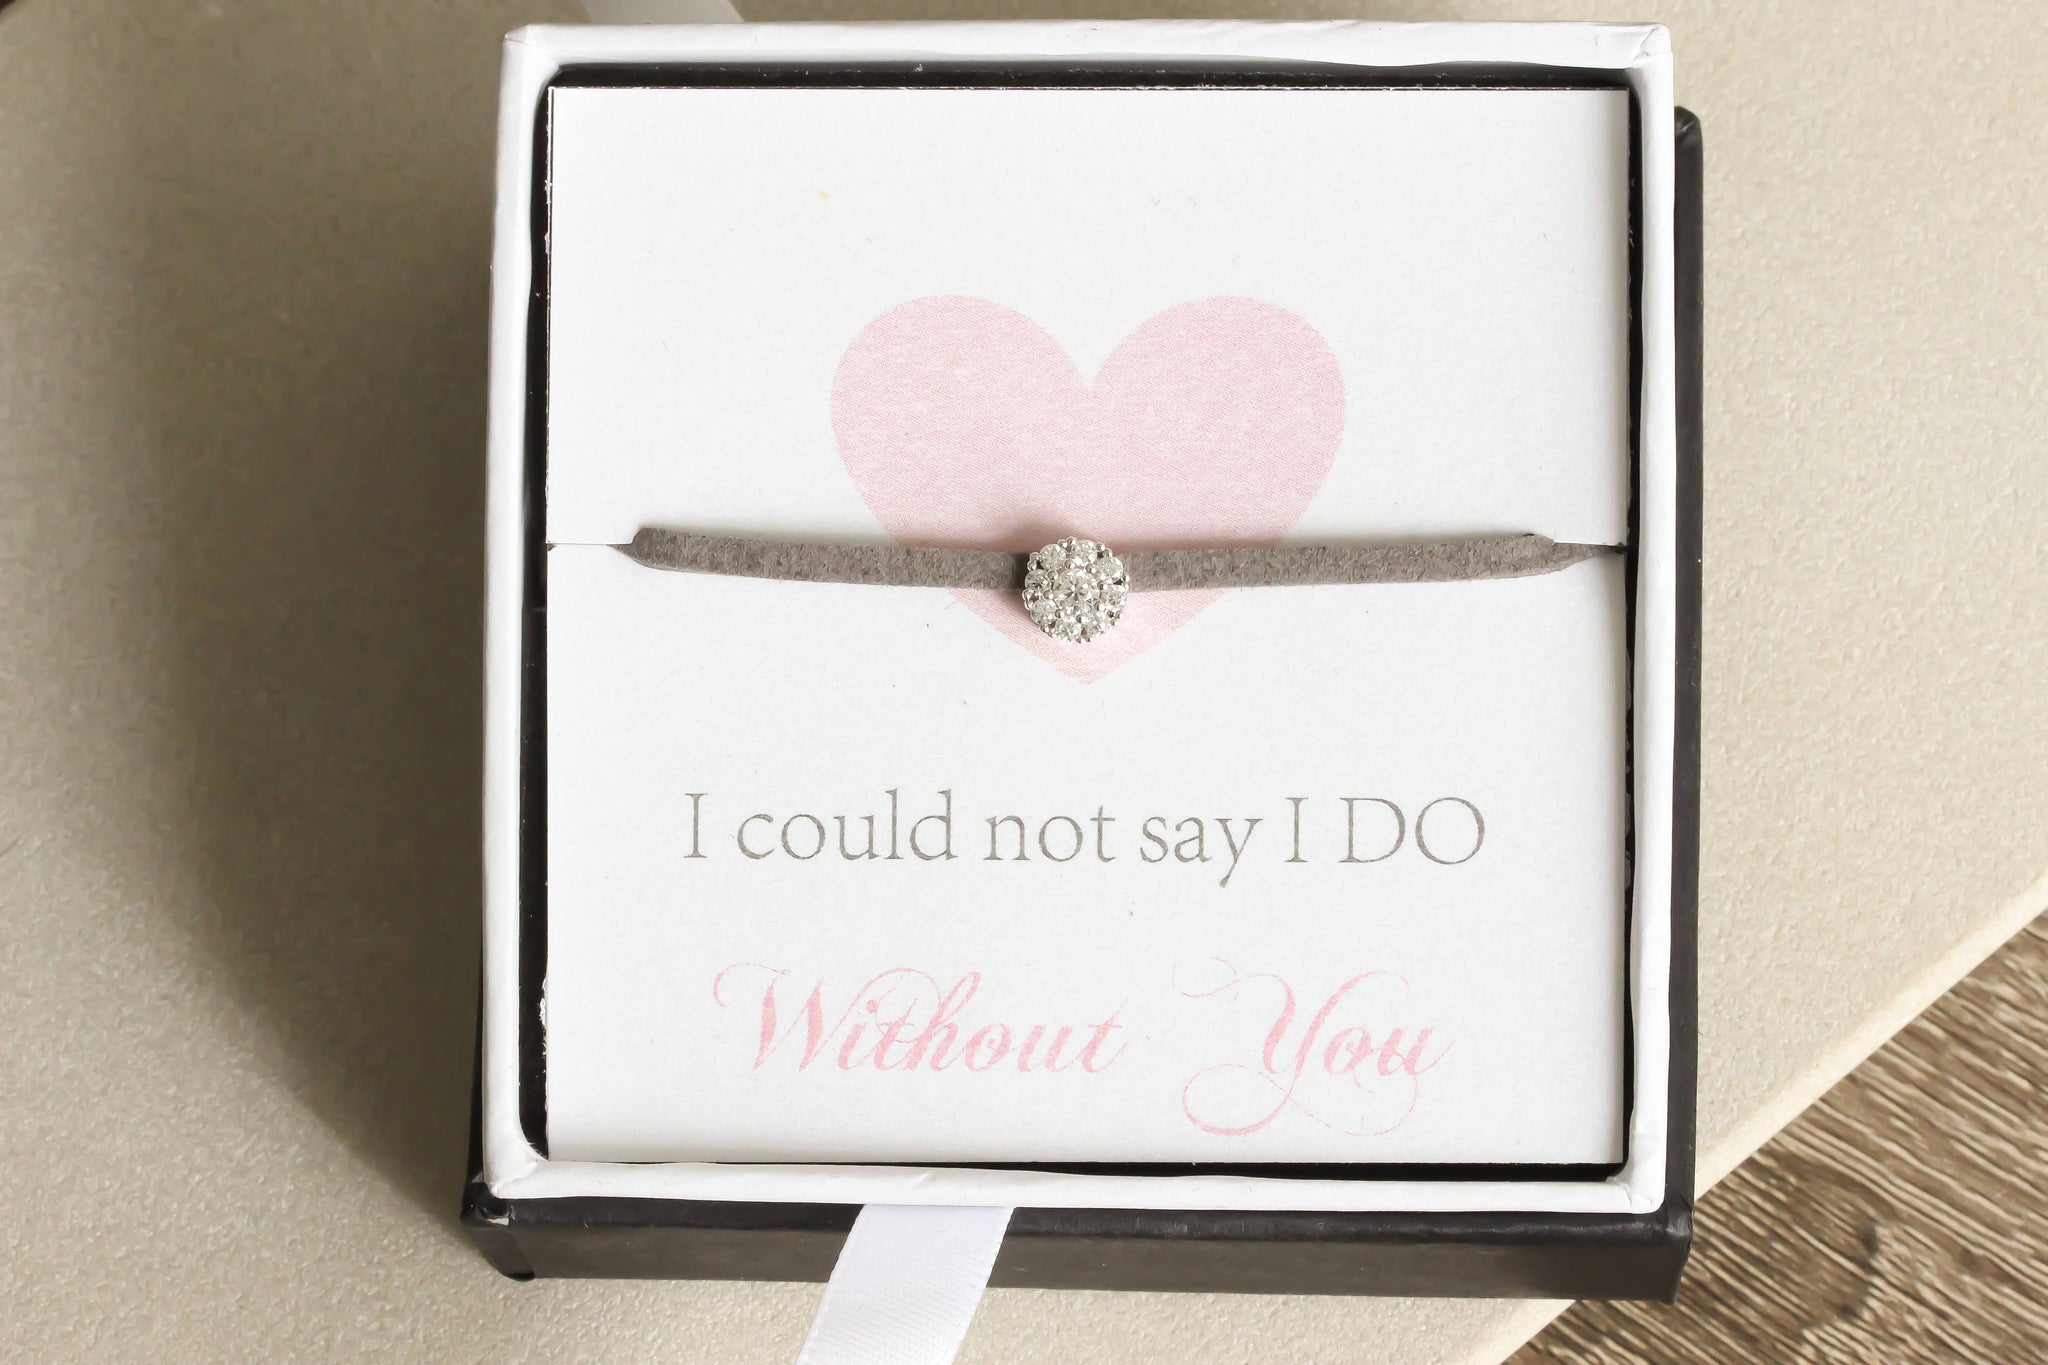 I couldnt say I do without you Bracelet Bridesmaid maid of honor gift wedding jewelry bridesmaid proposal bracelet bridal party gift - product_type] - Beautiz